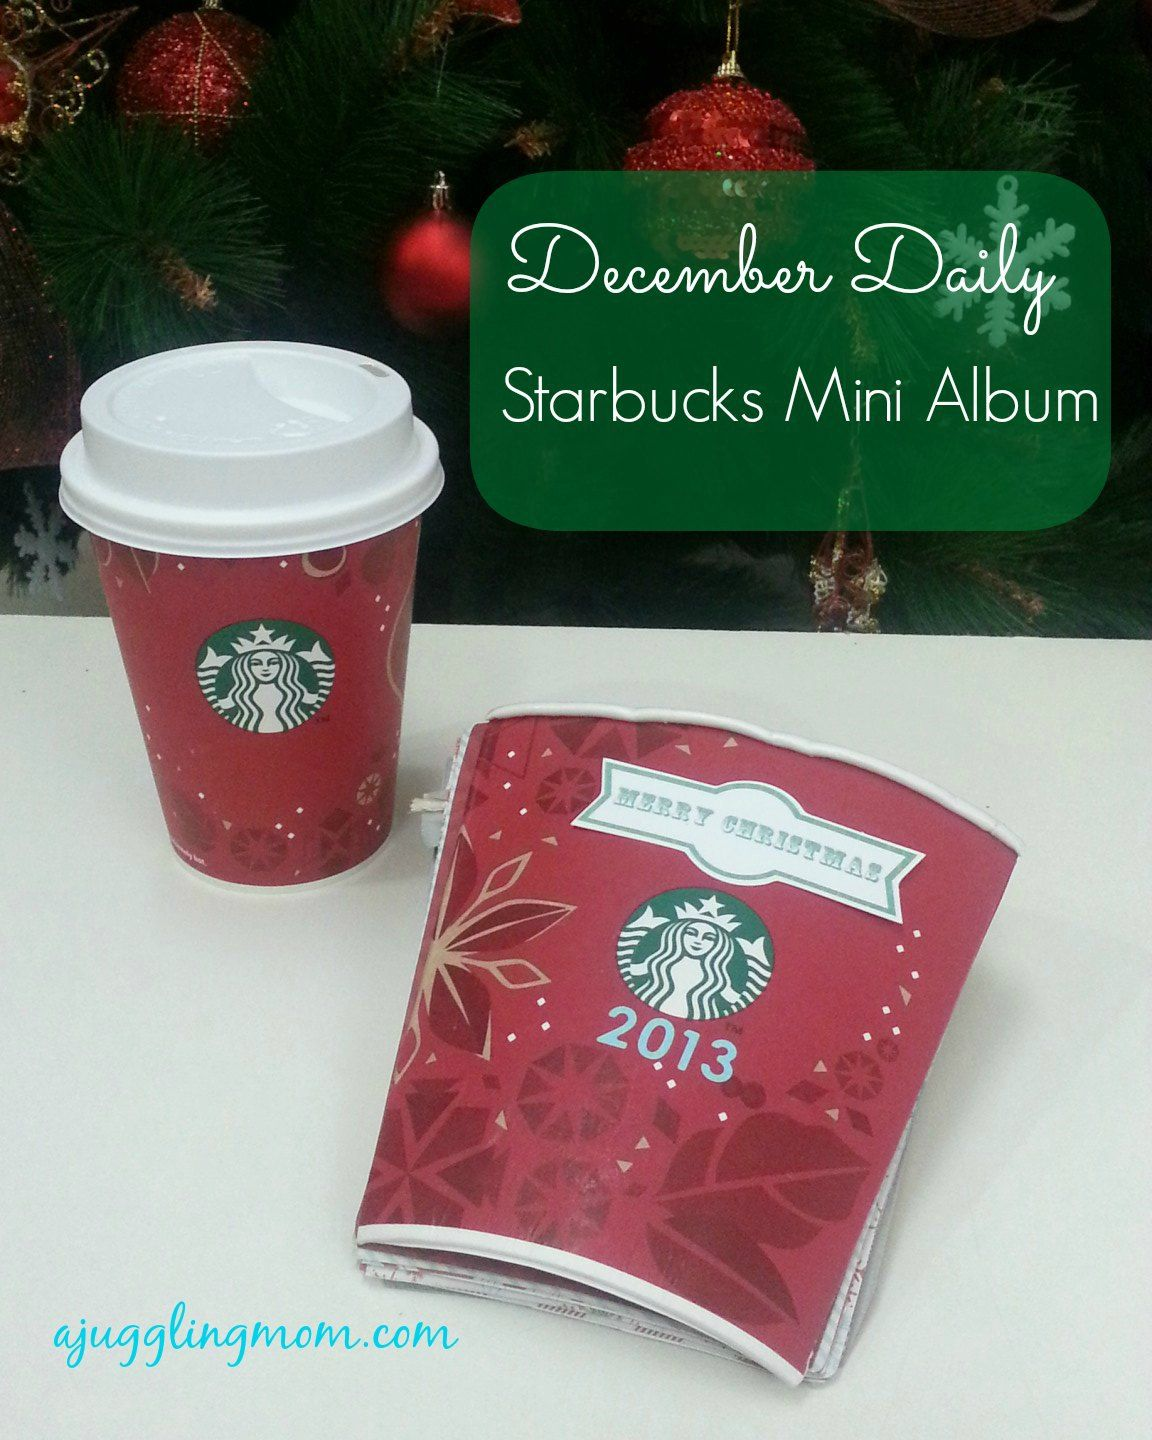 Coffee Book Album: December Daily - Starbucks Mini Album